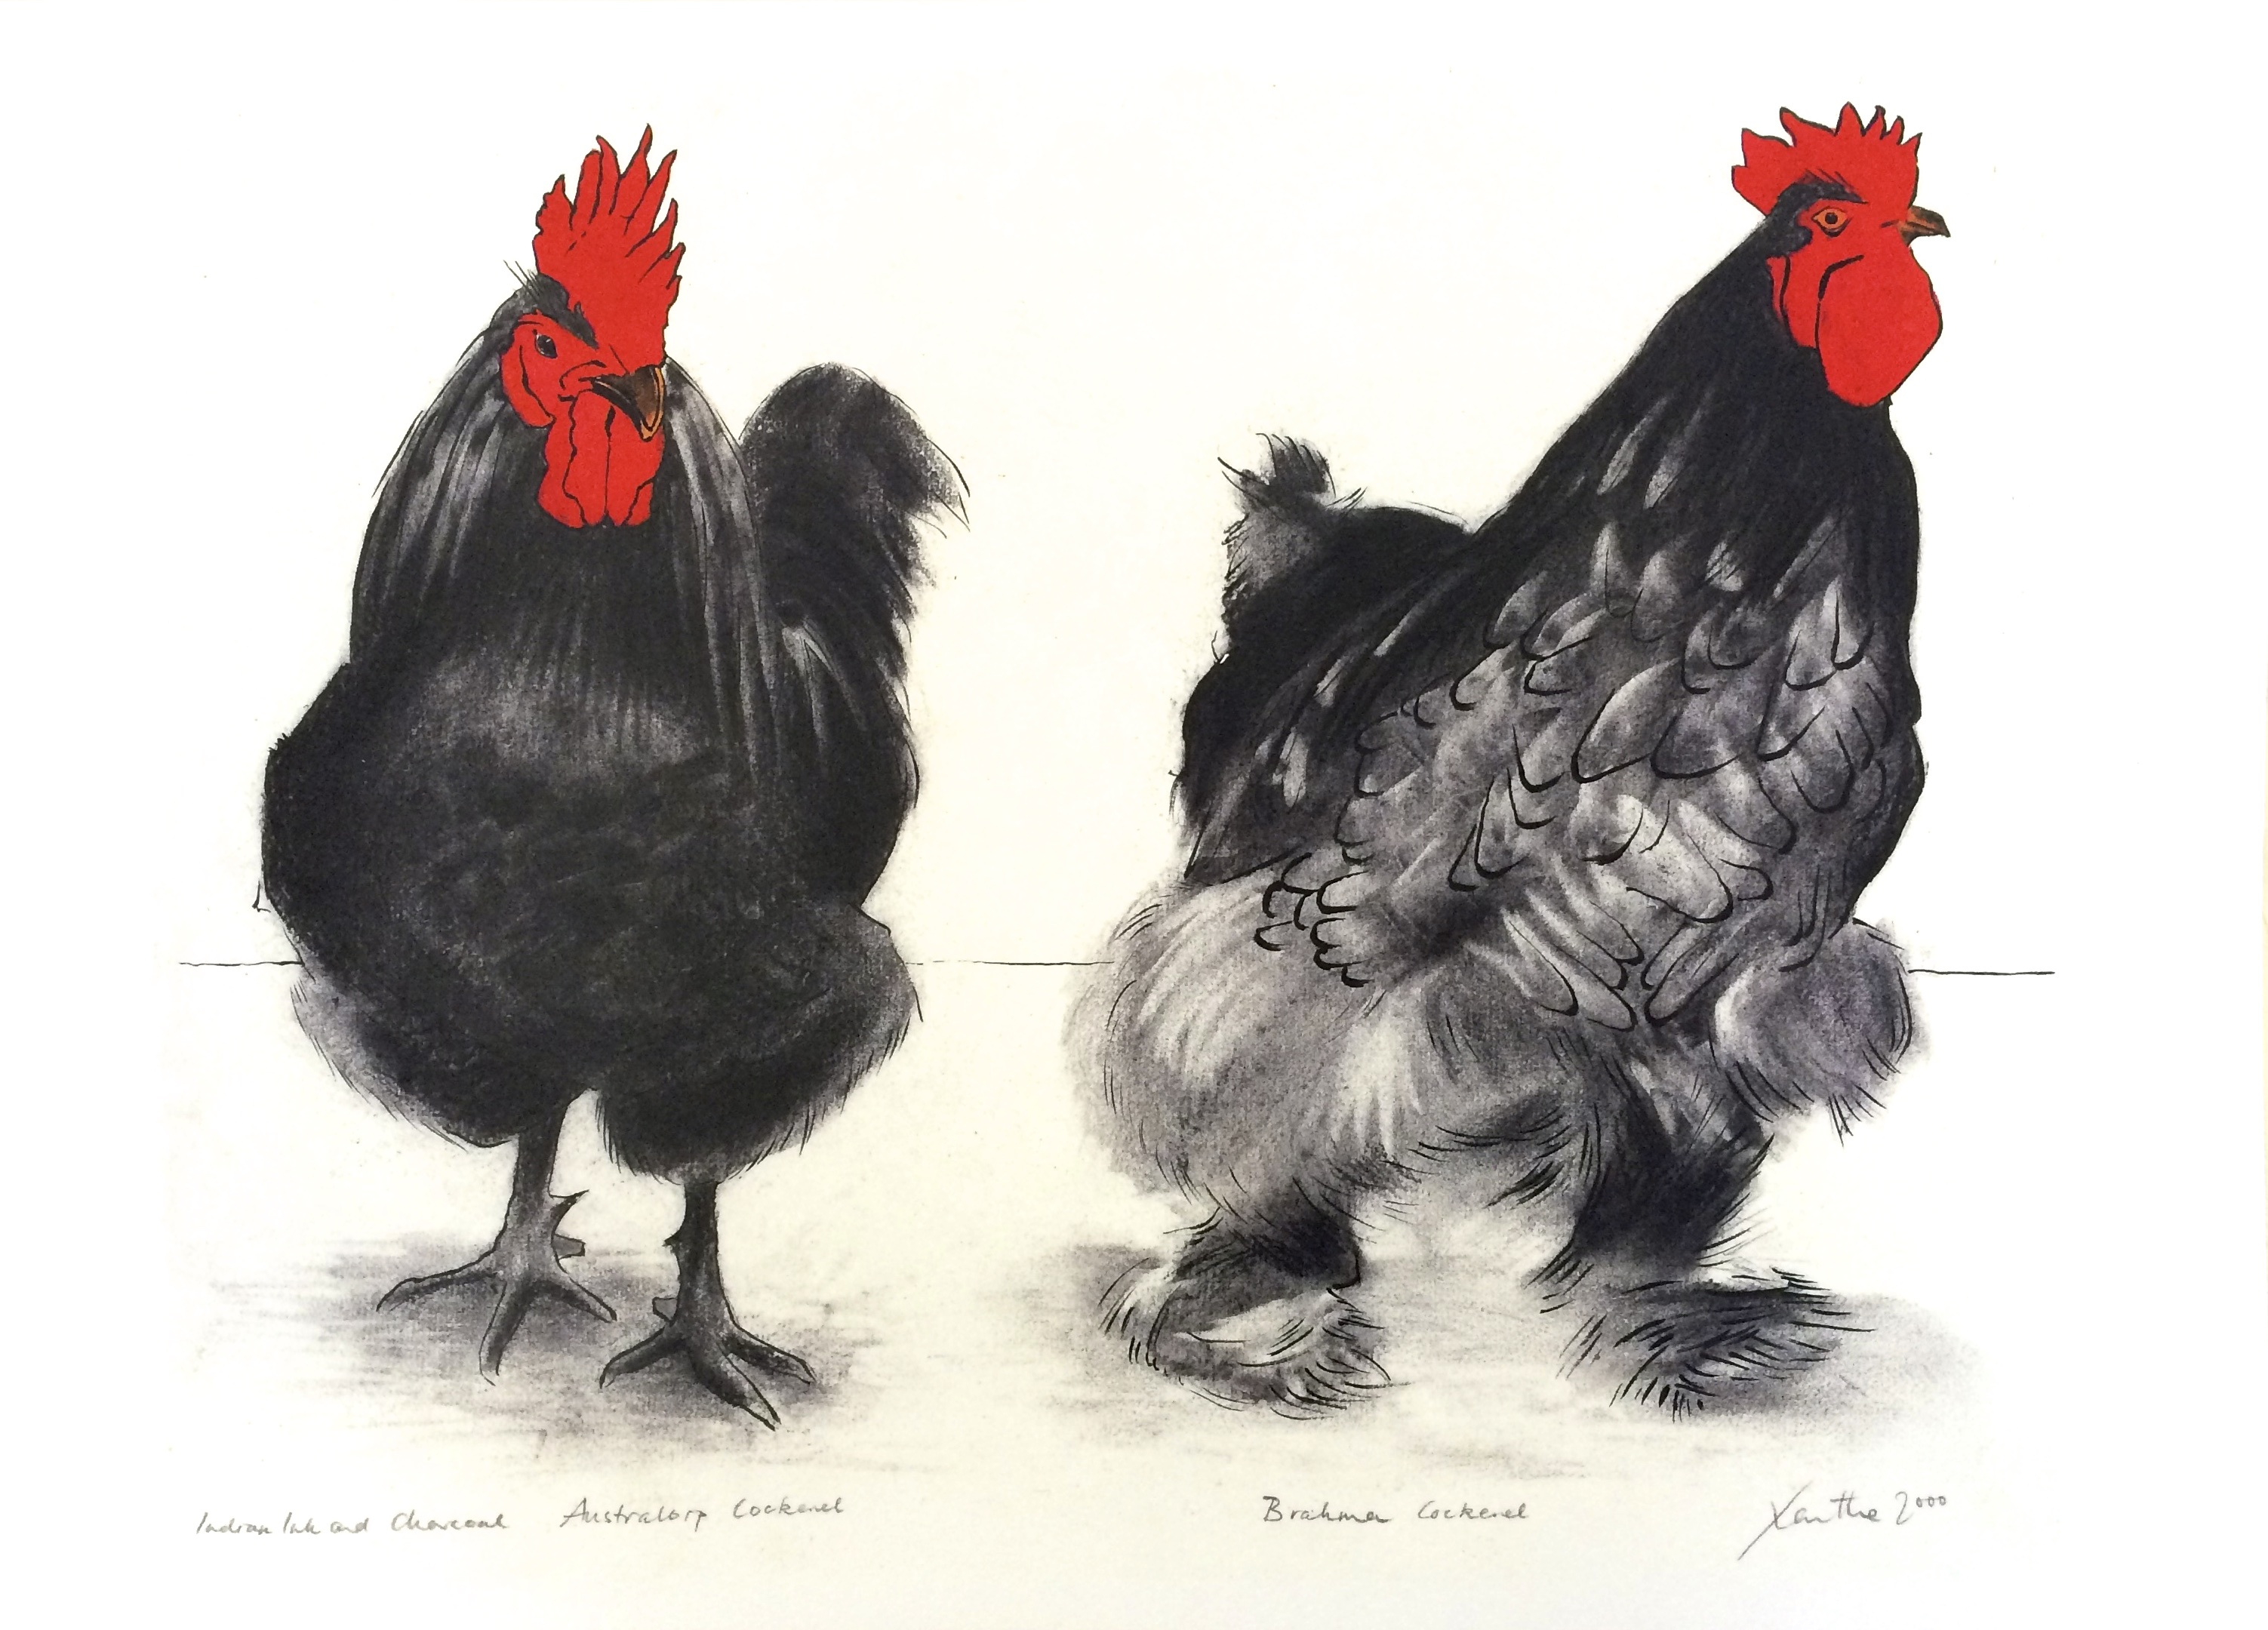 Australorp and Brahma Cockerels